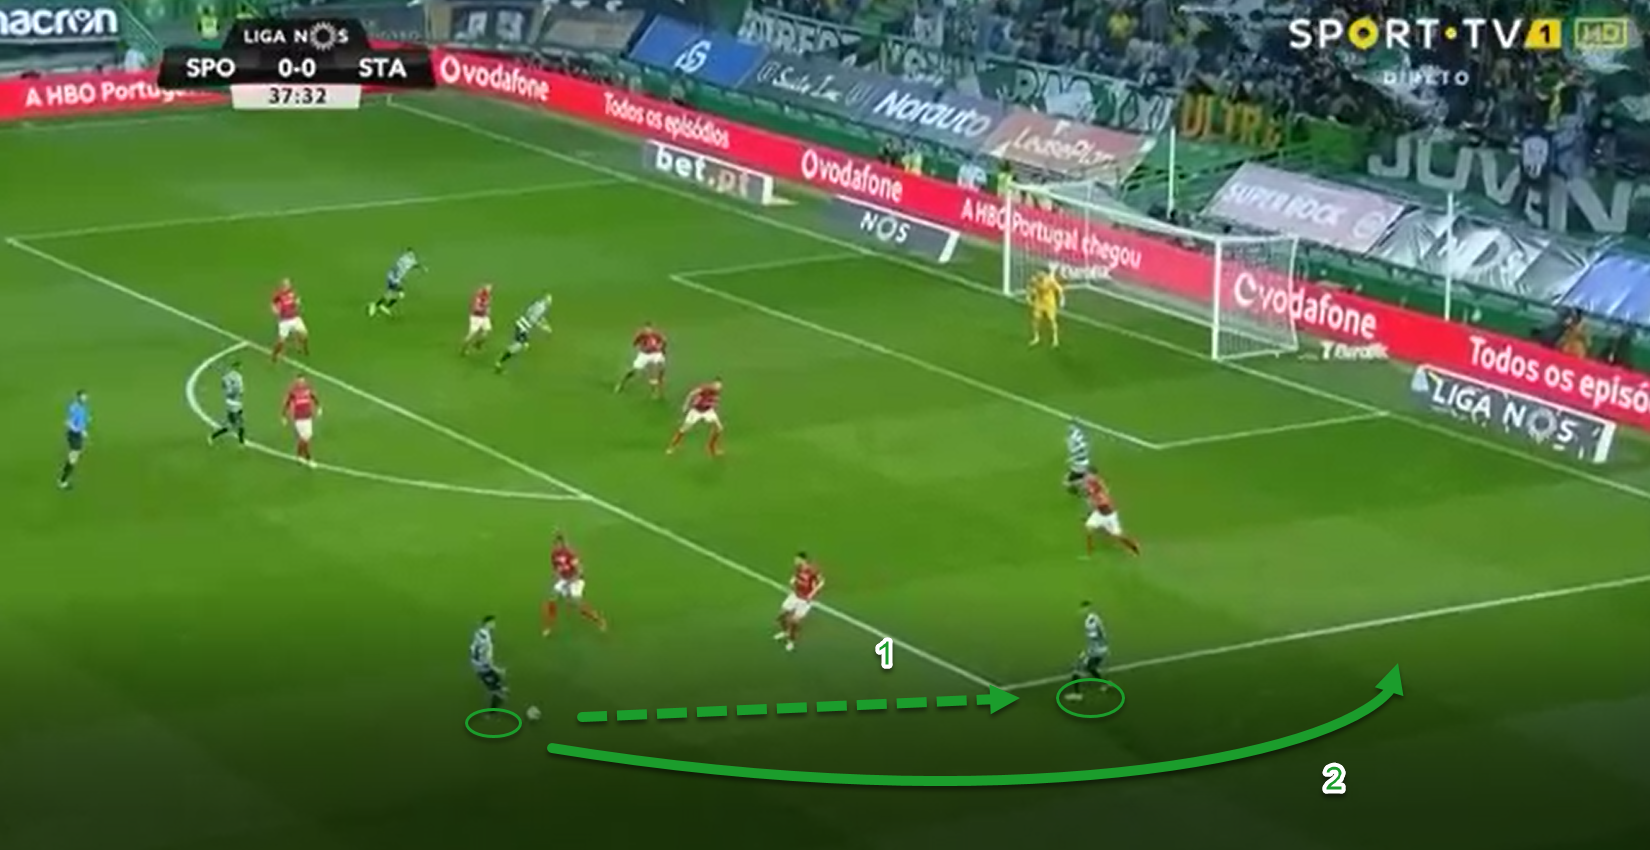 Tactical analysis Bruno Fernandes Sporting statistics